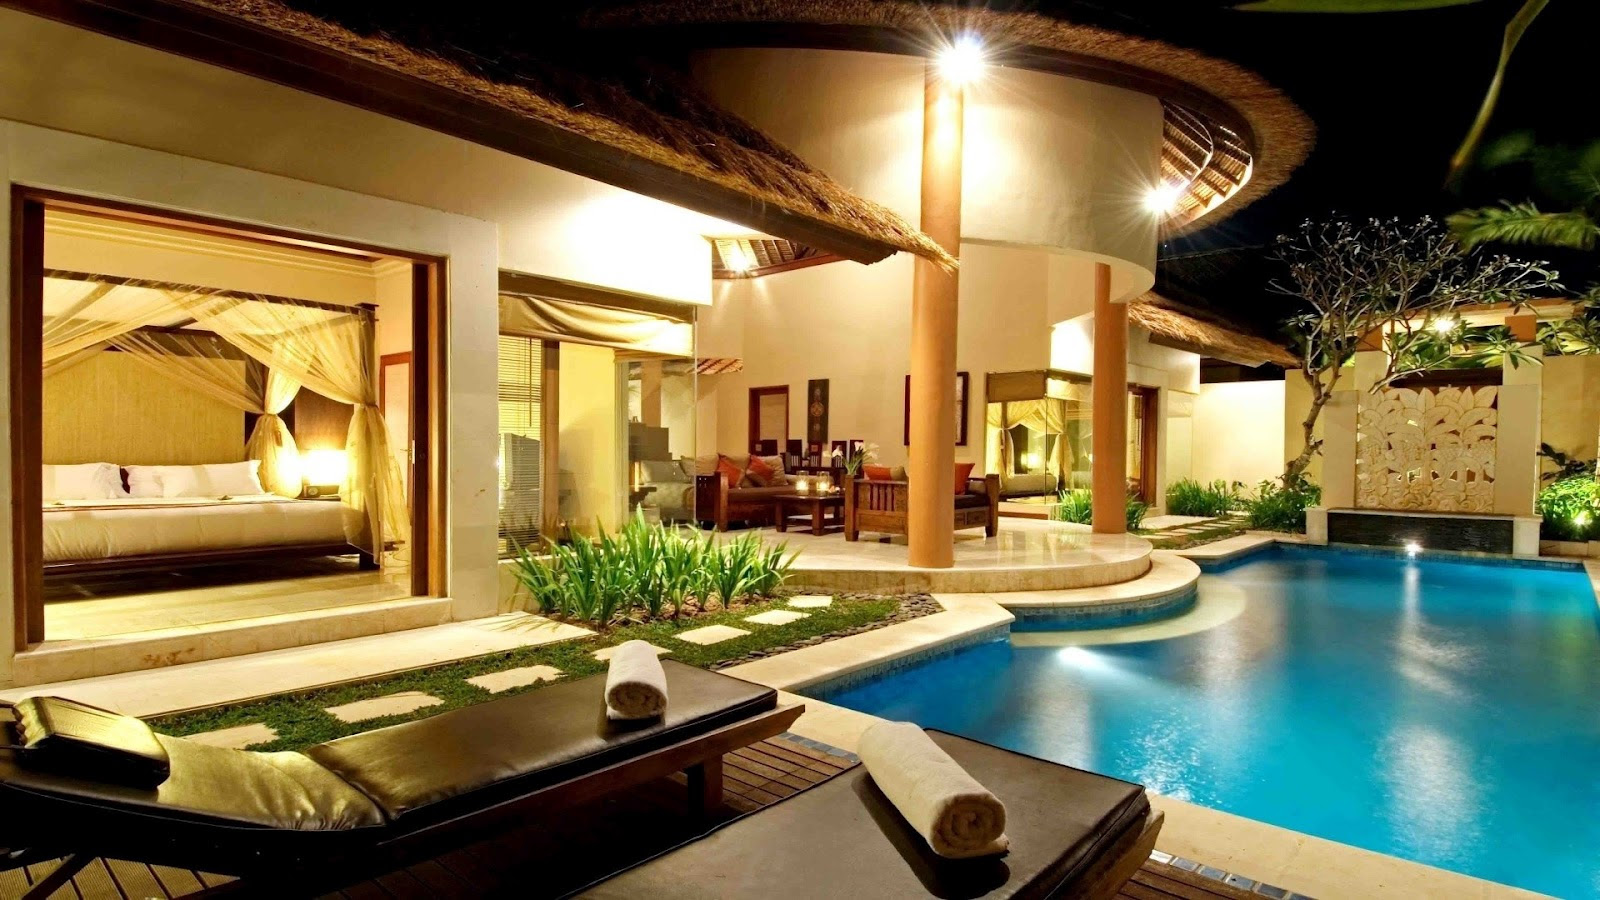 build my dream house with pool inside with the presense chaise lounge pool chairs and stunning home design